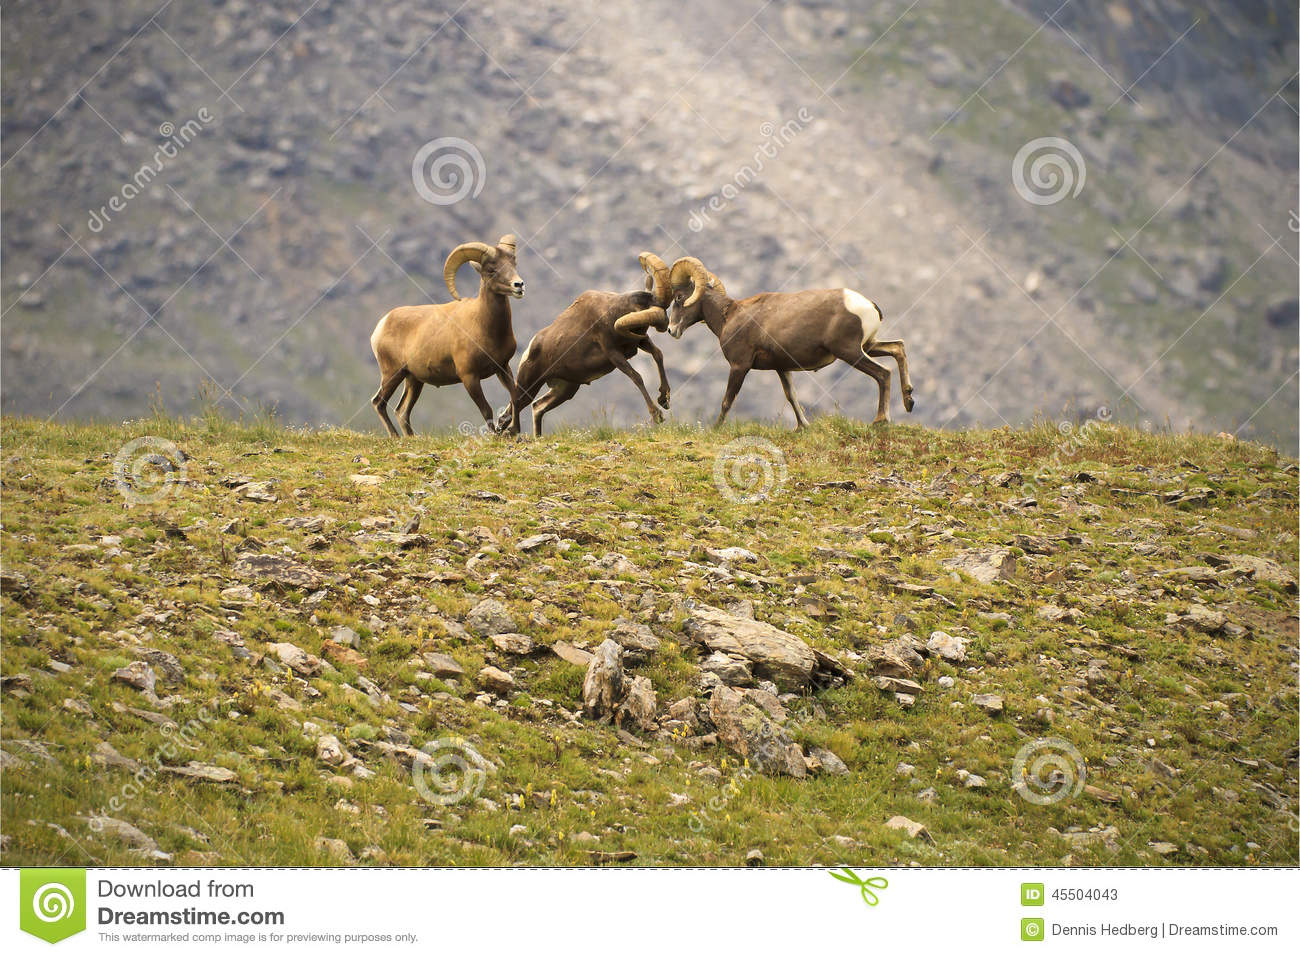 Three Young Bighorn Sheep Sparring On A Mountainside In The Colorado Rockies